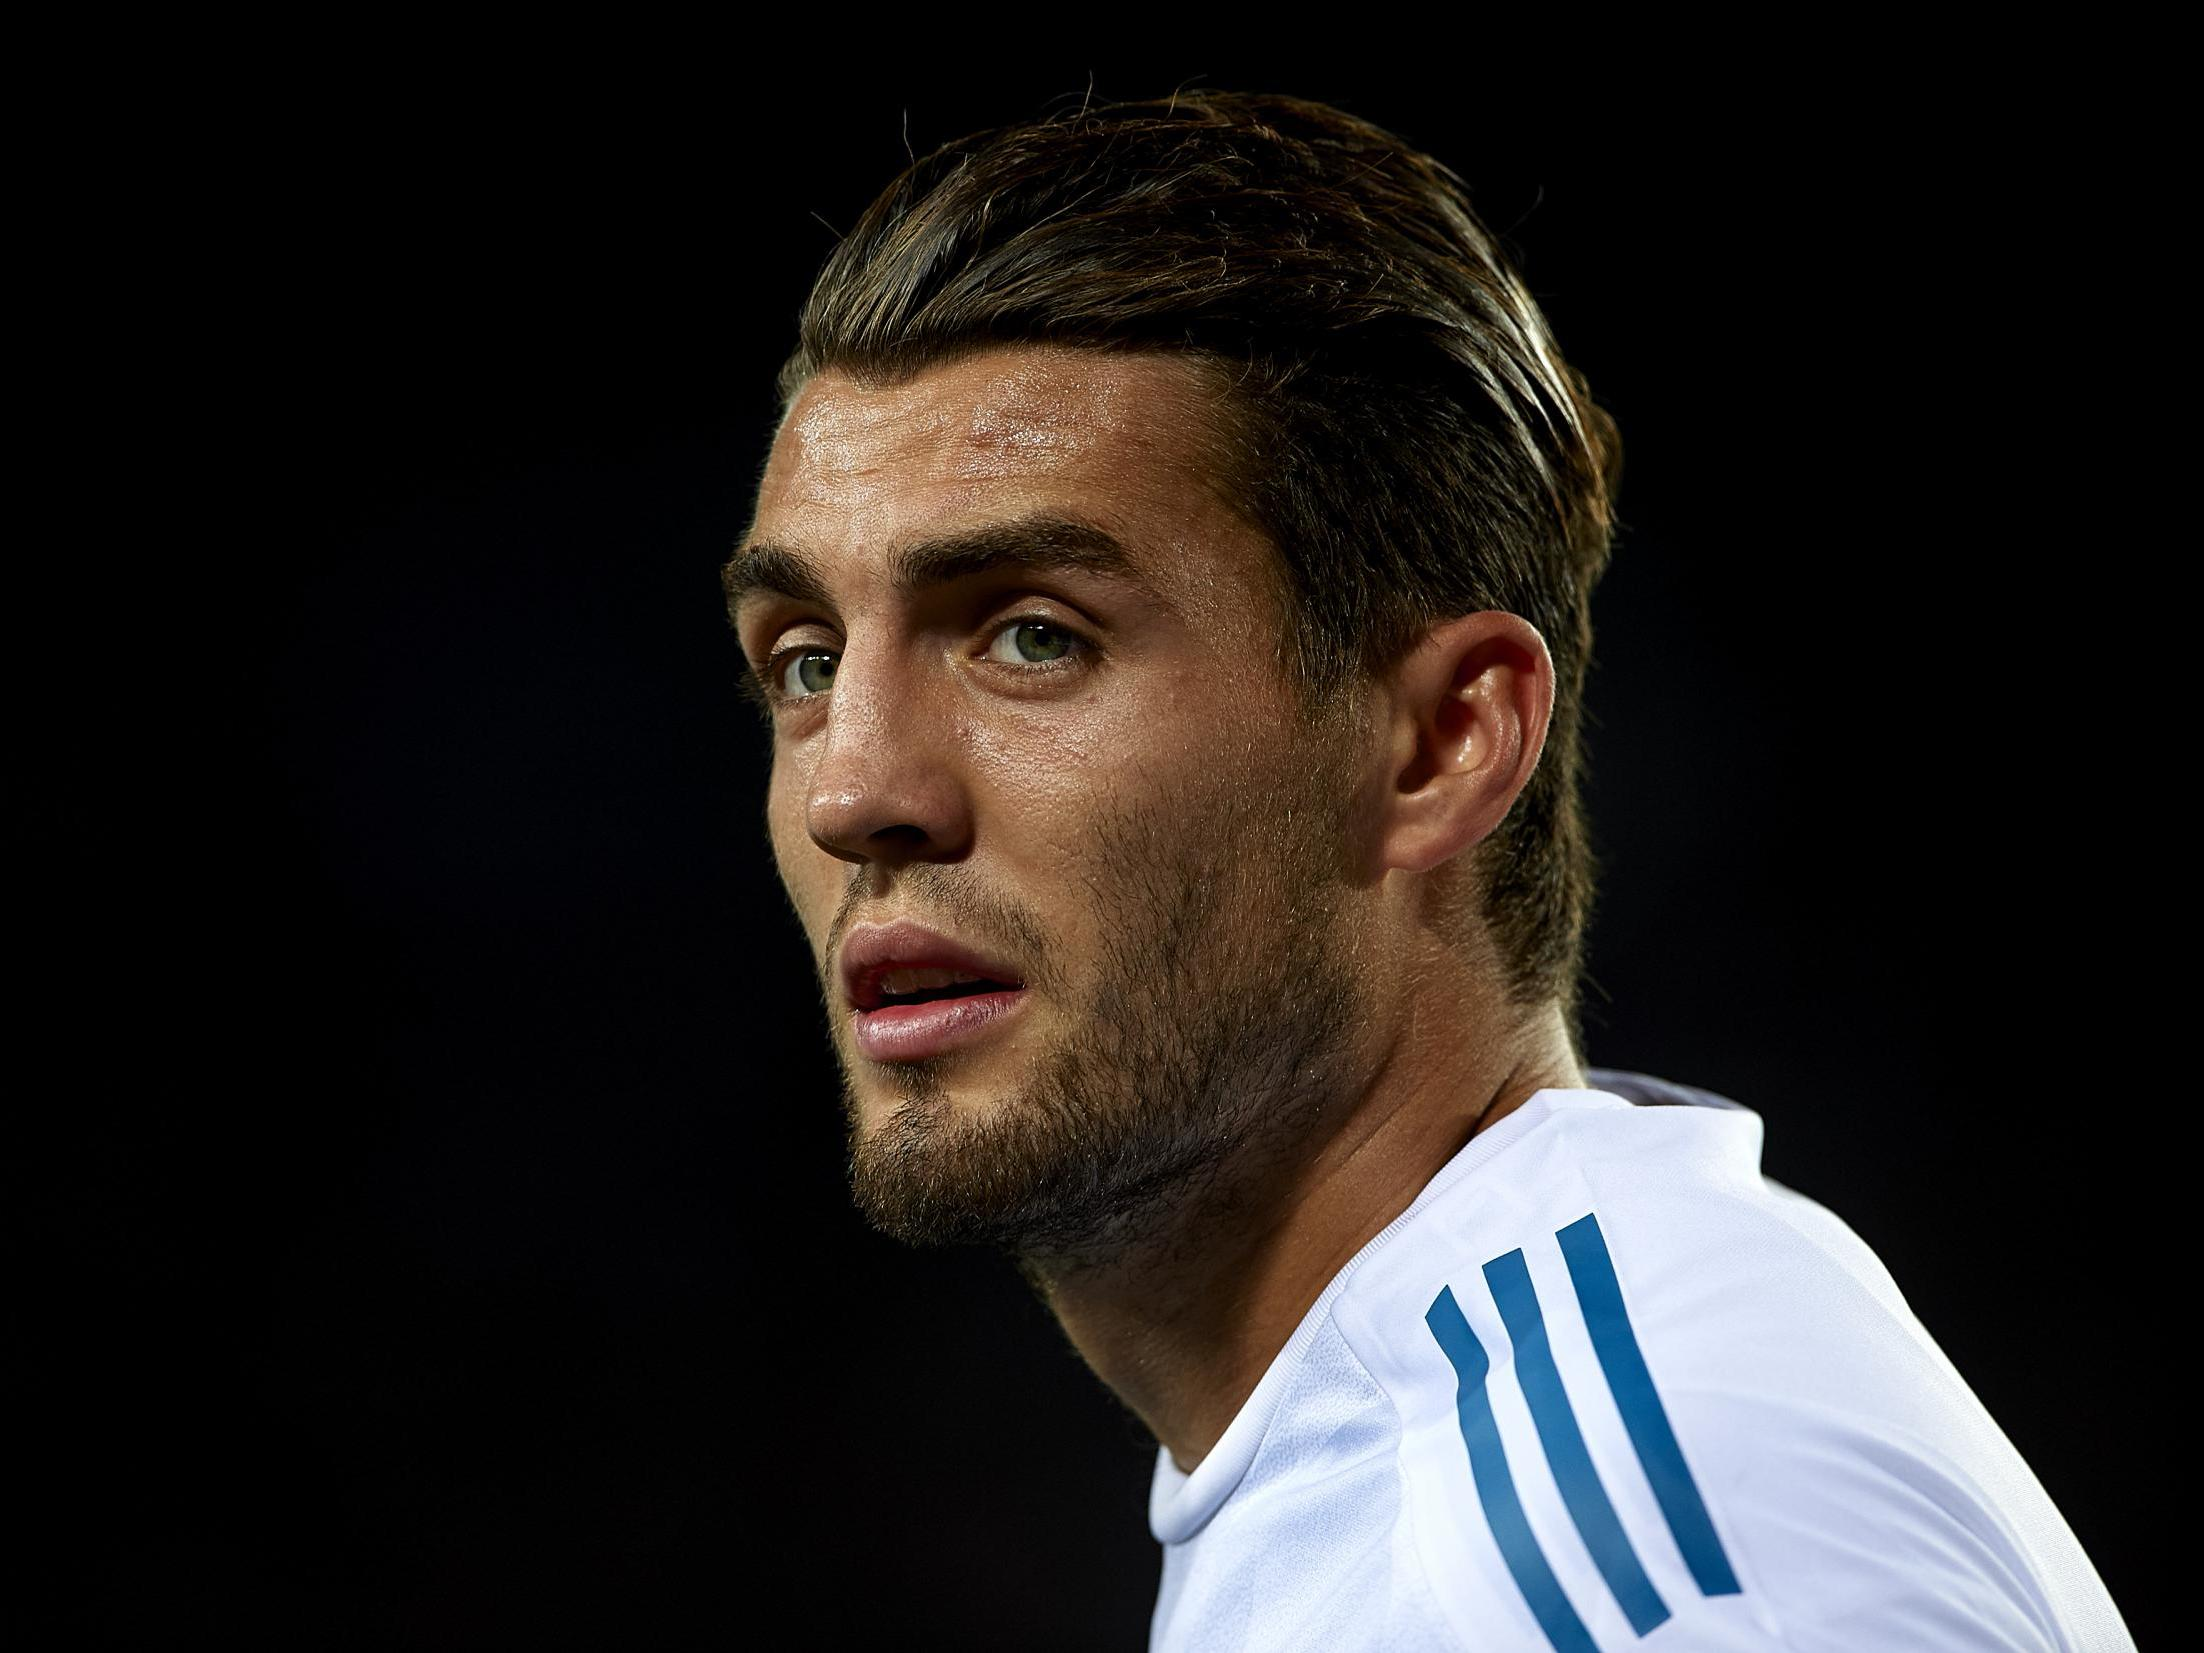 Real Madrid's Mateo Kovacic trying to force through move to Chelsea or City before Premier League deadline